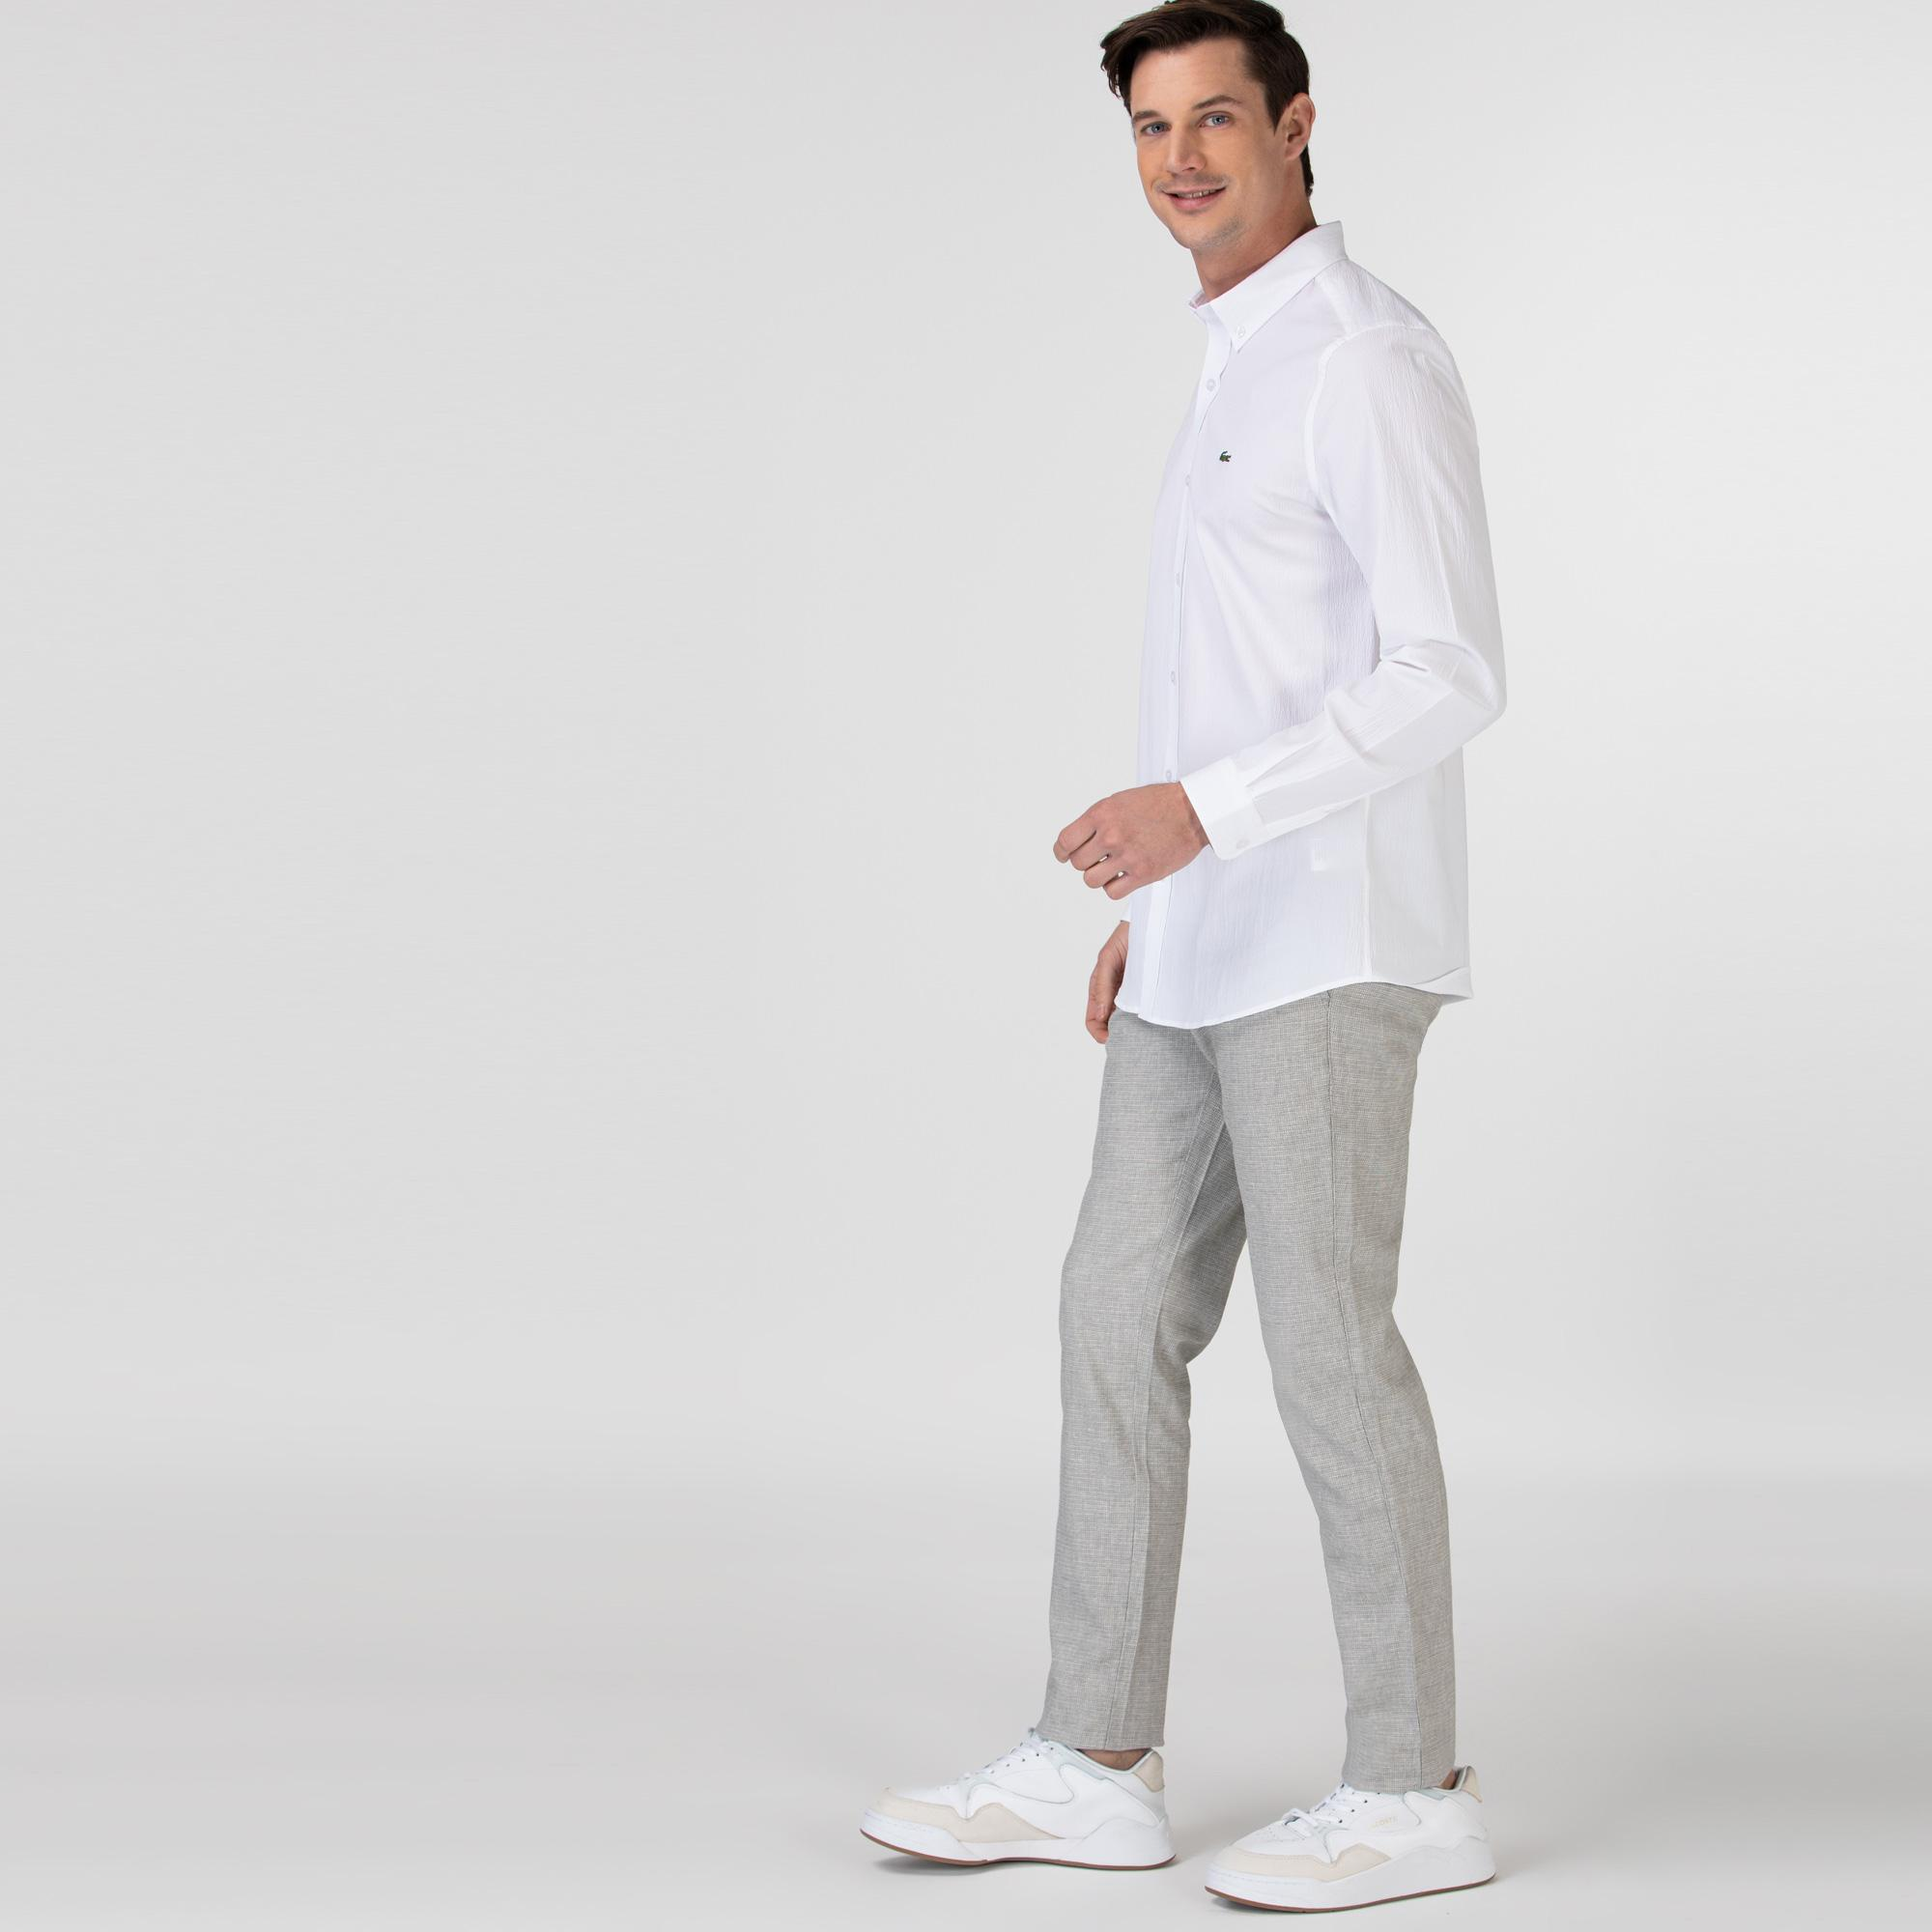 Lacoste Erkek Regular Fit Gri Pantolon